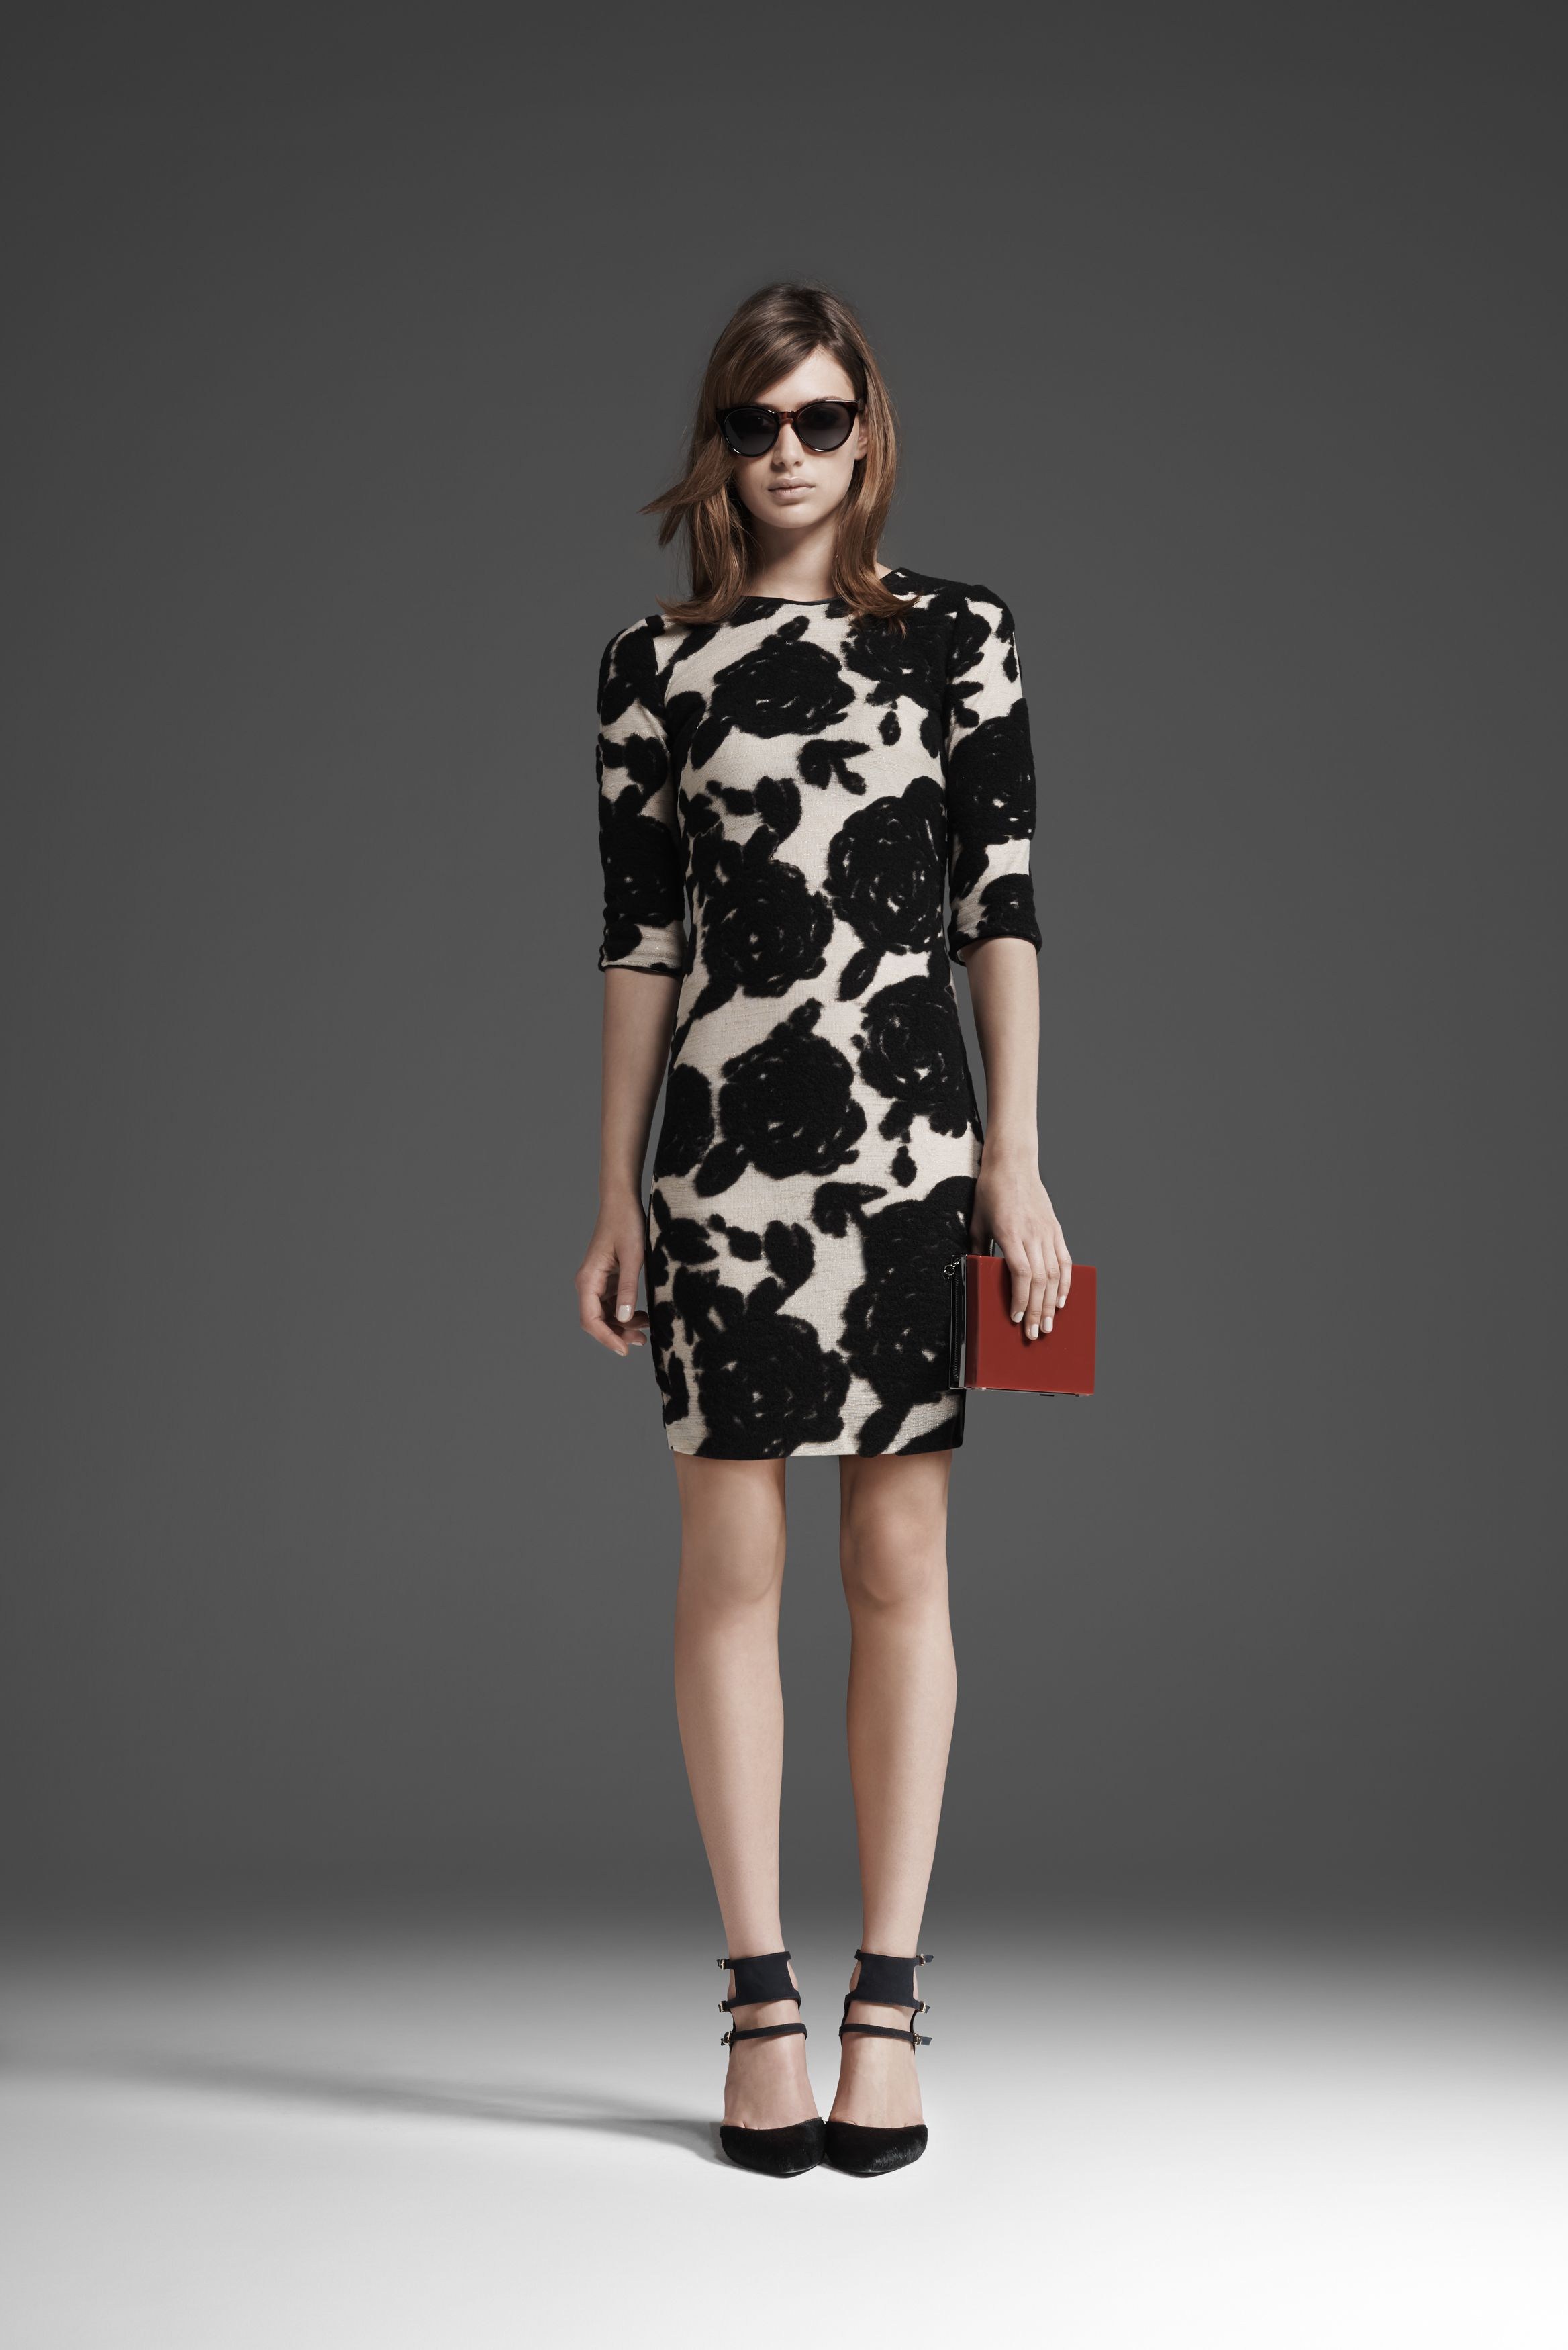 REISS Lavine Dress | How you look | Pinterest